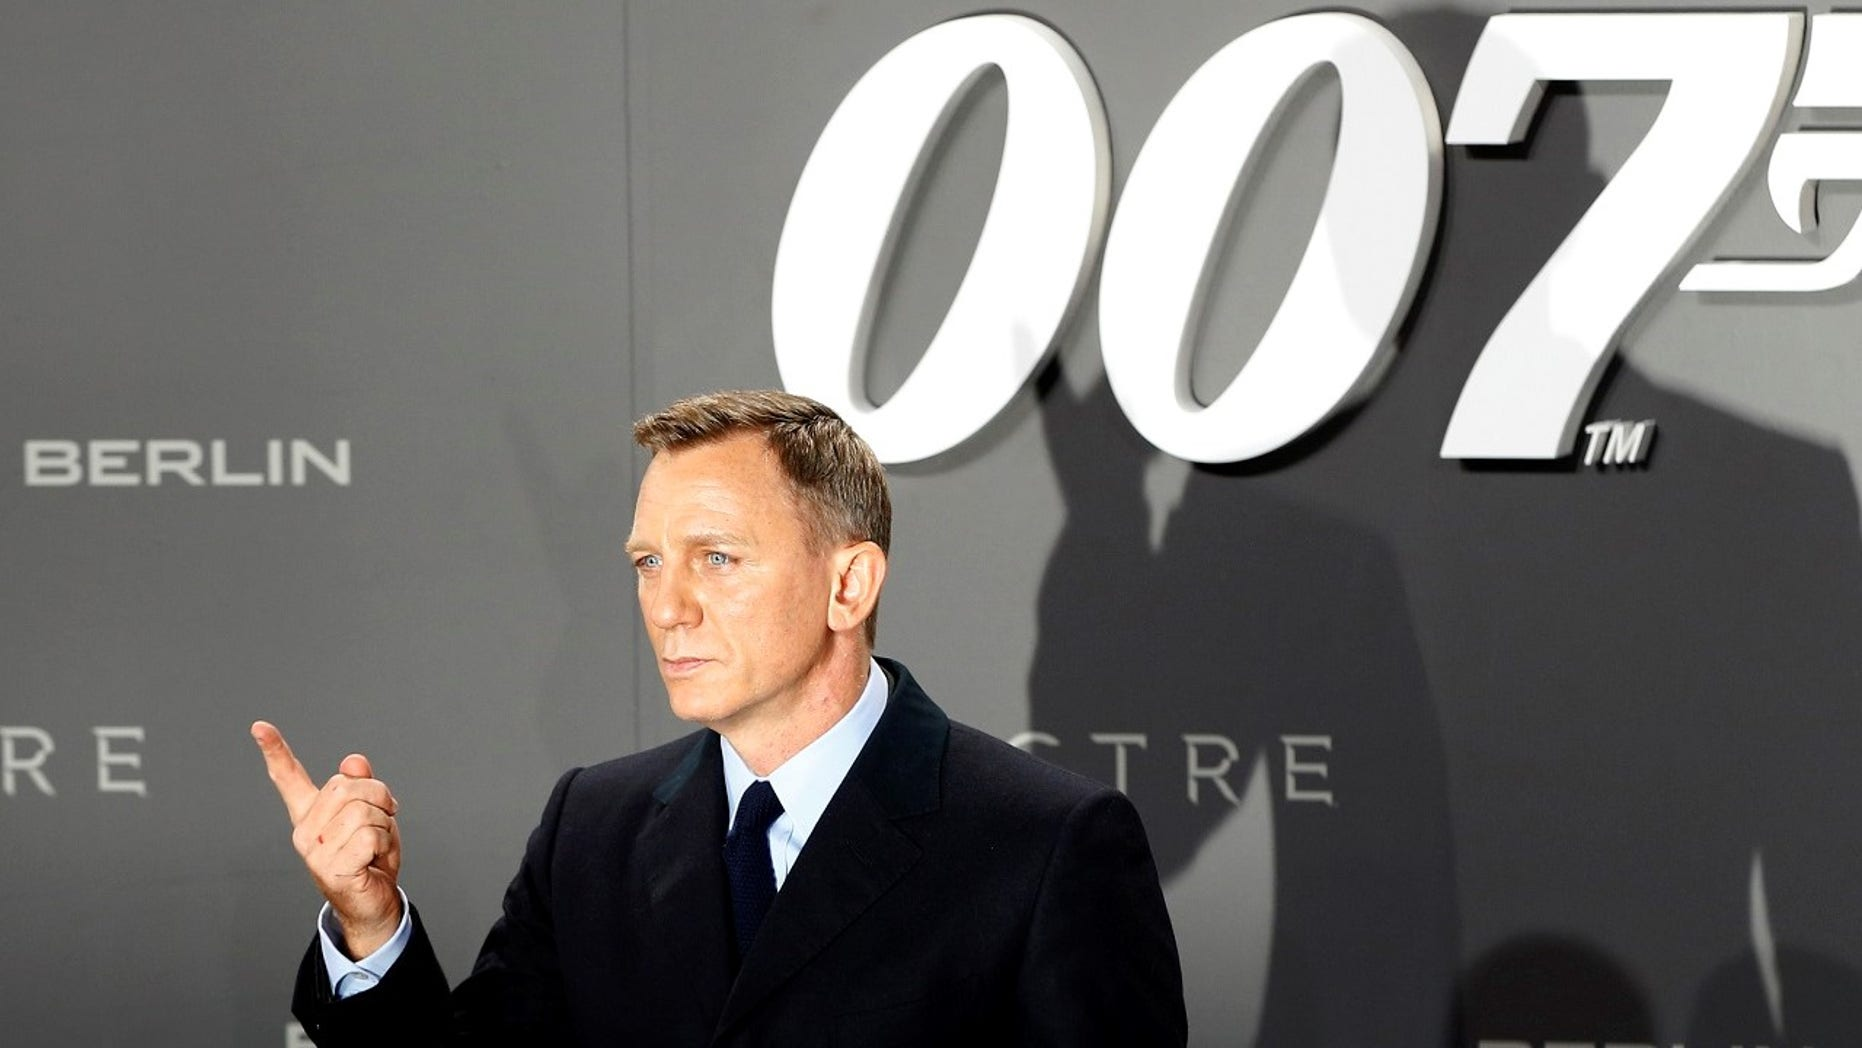 """""""There is strong and consistent evidence that James Bond has a chronic alcohol consumption problem at the 'severe' end of the spectrum,"""" wrote the researchers."""